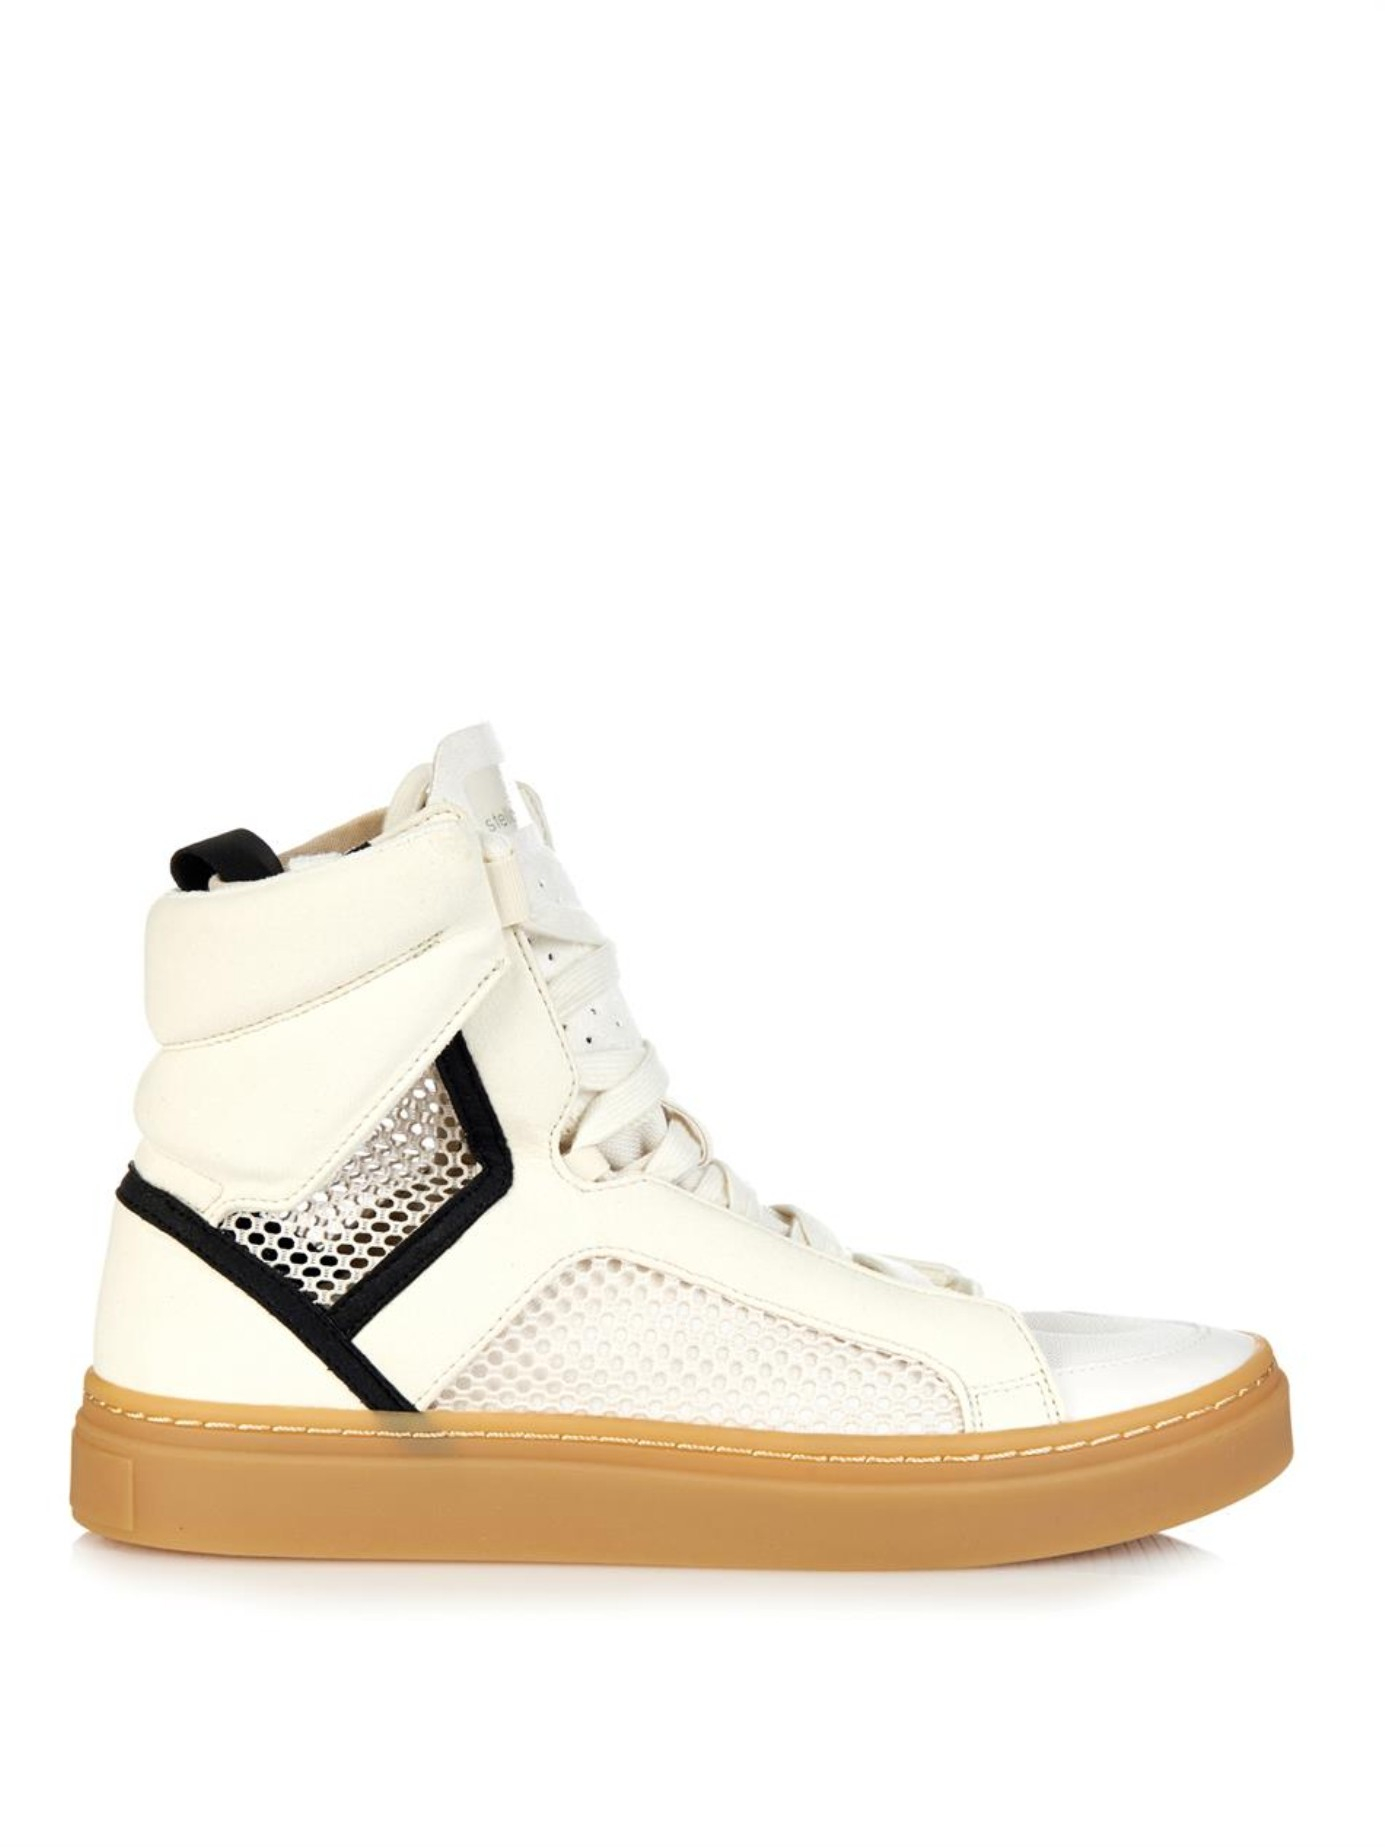 Top By Sneakers Mccartney Stella White Asamina Adidas High rCexdoBW